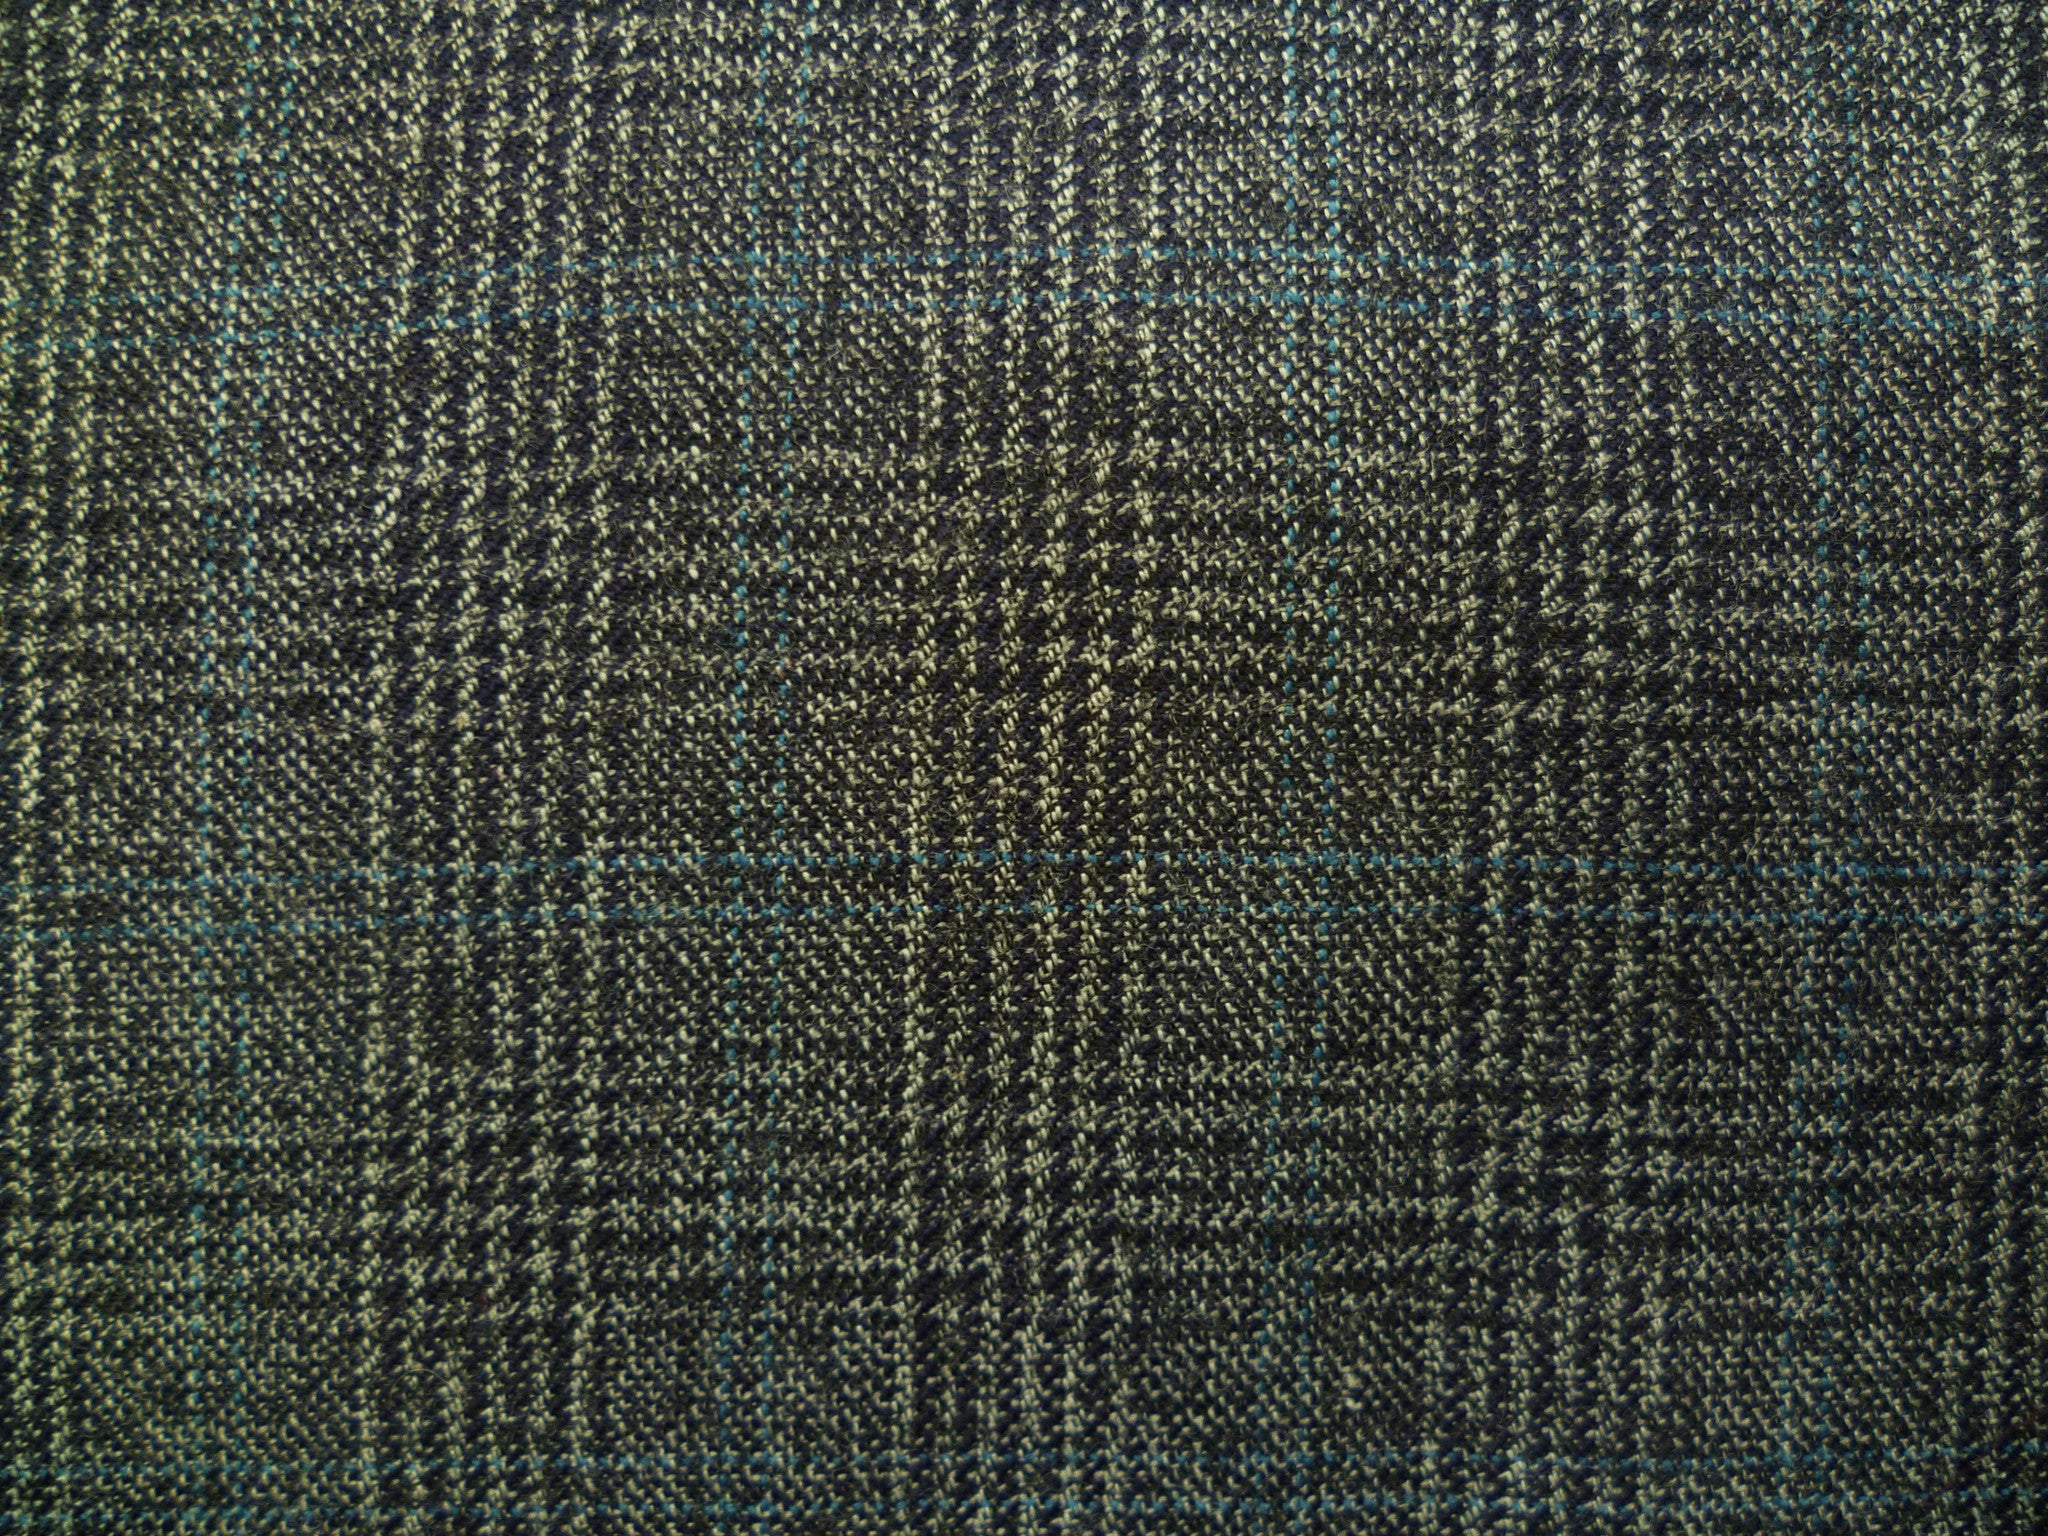 Mixed Grey and Dark Teal Overchecked Wool  Special Price